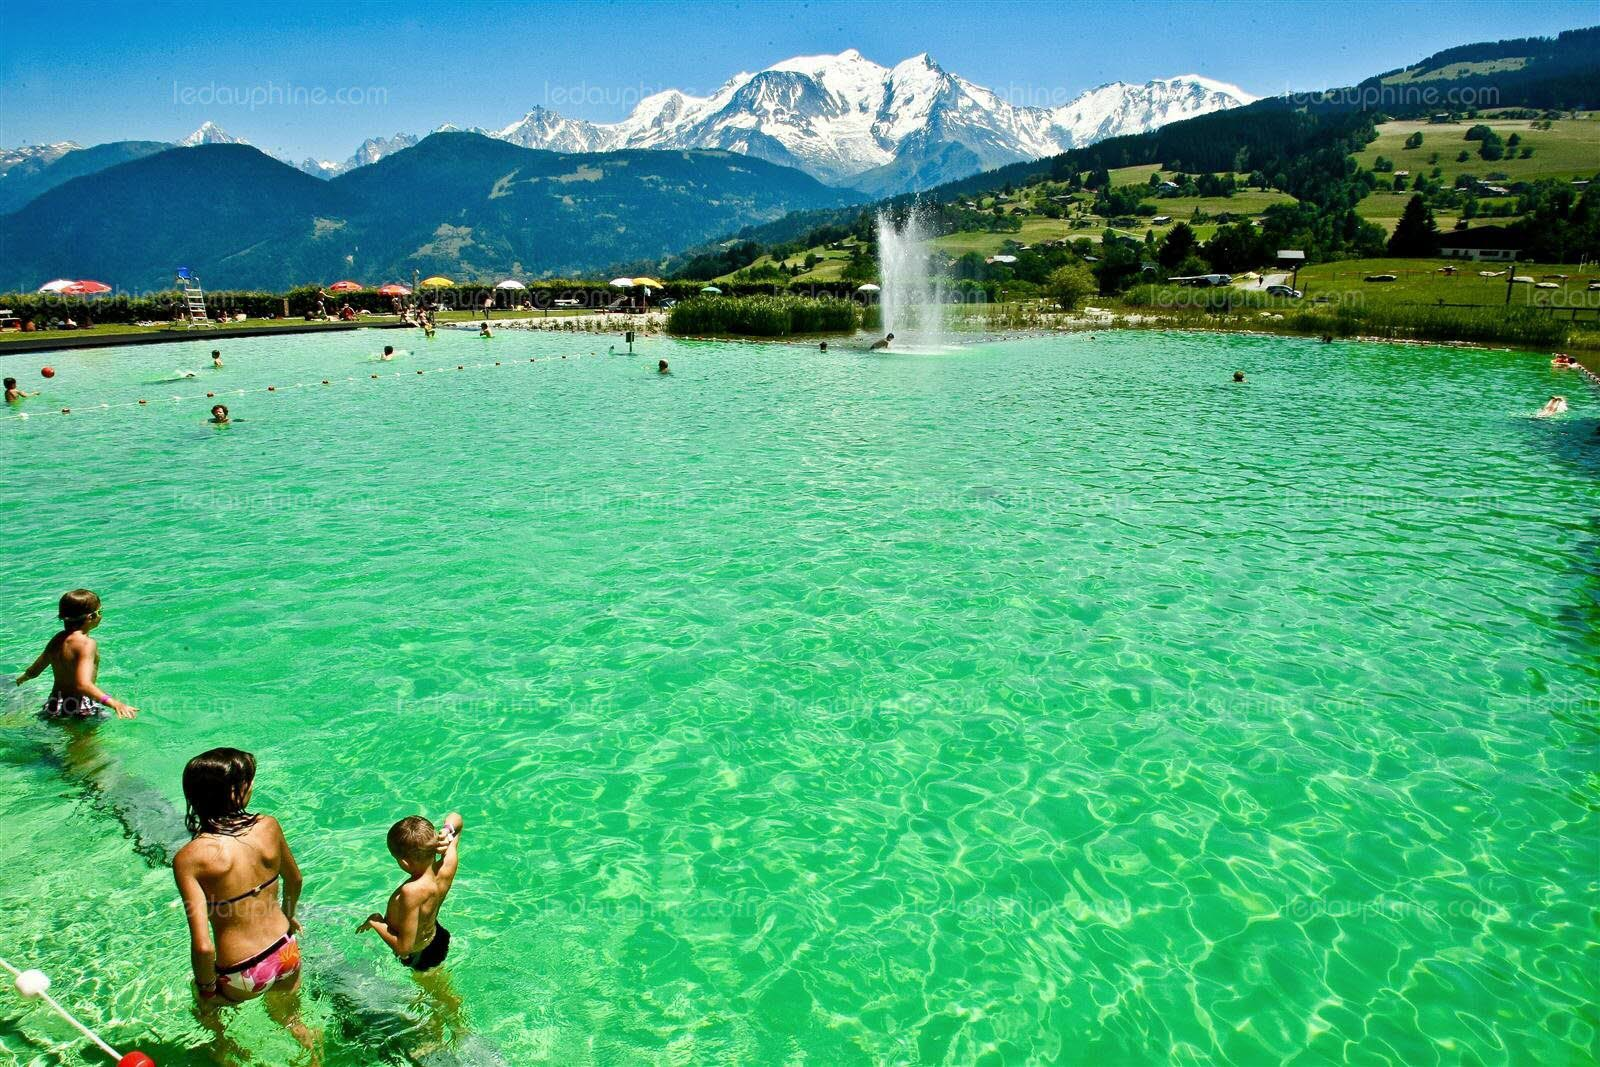 The beautiful swimming lake at Combloux